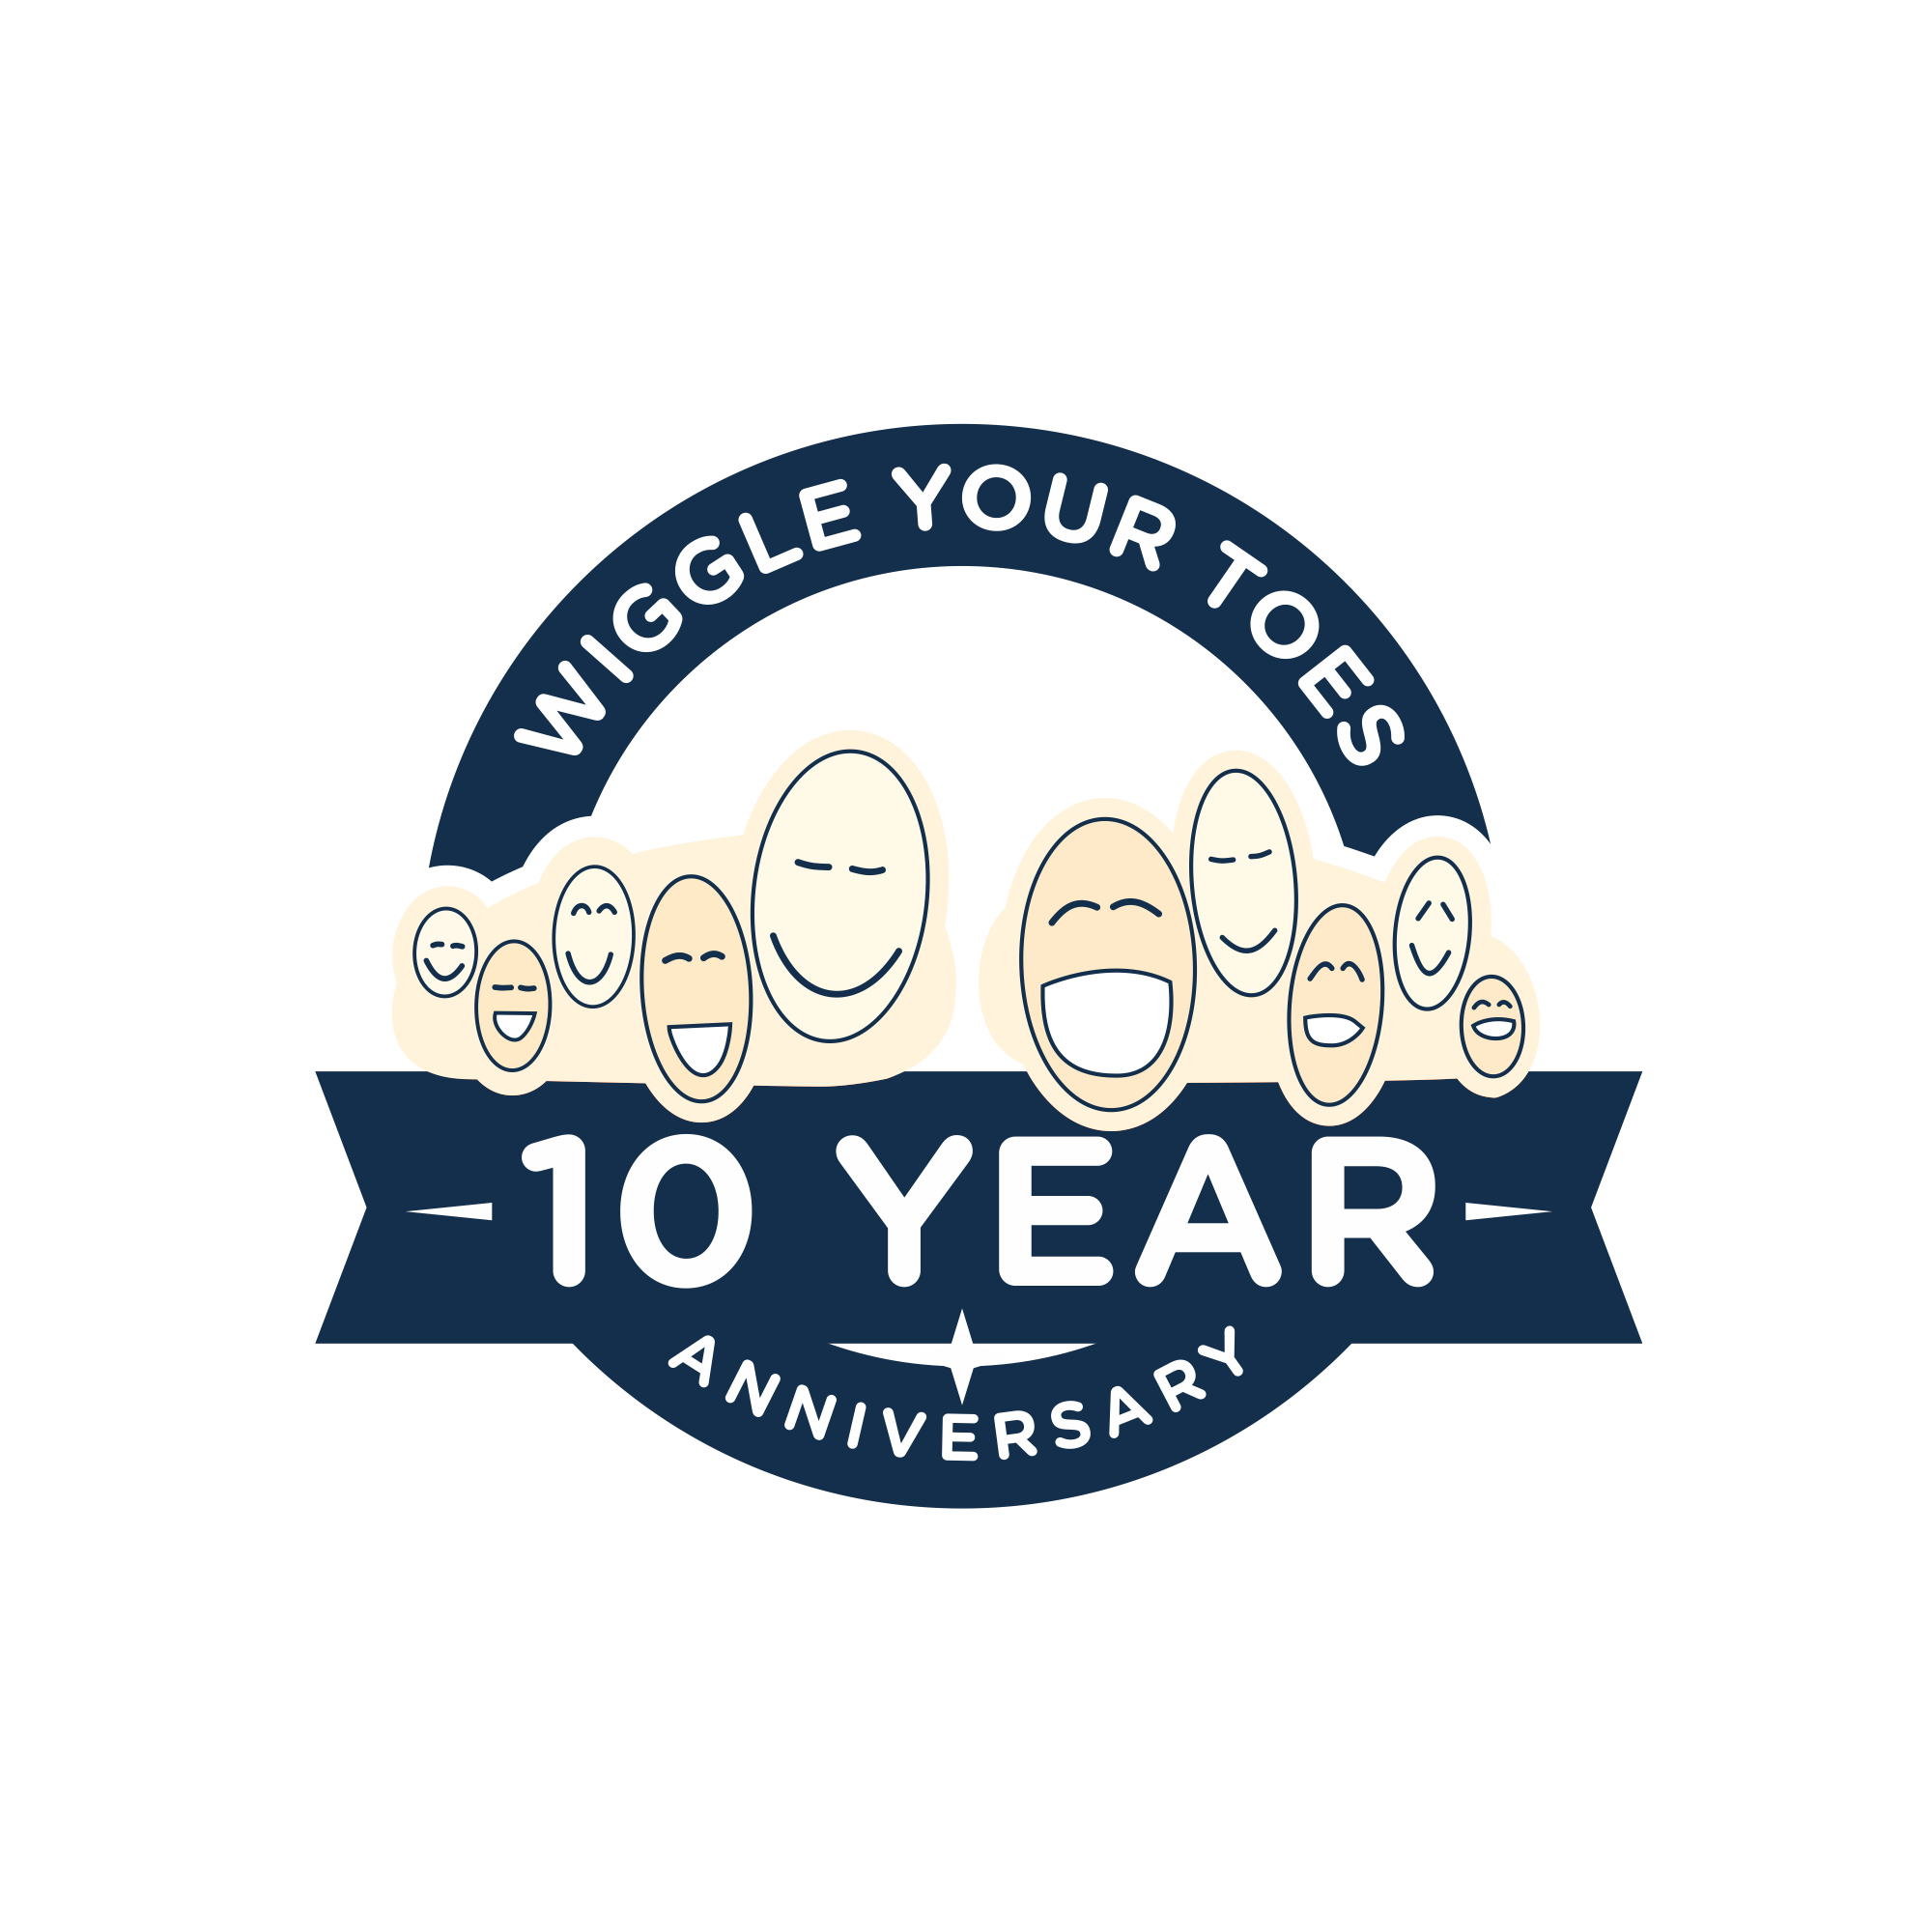 Wiggle Your Toes - 10 year anniversary